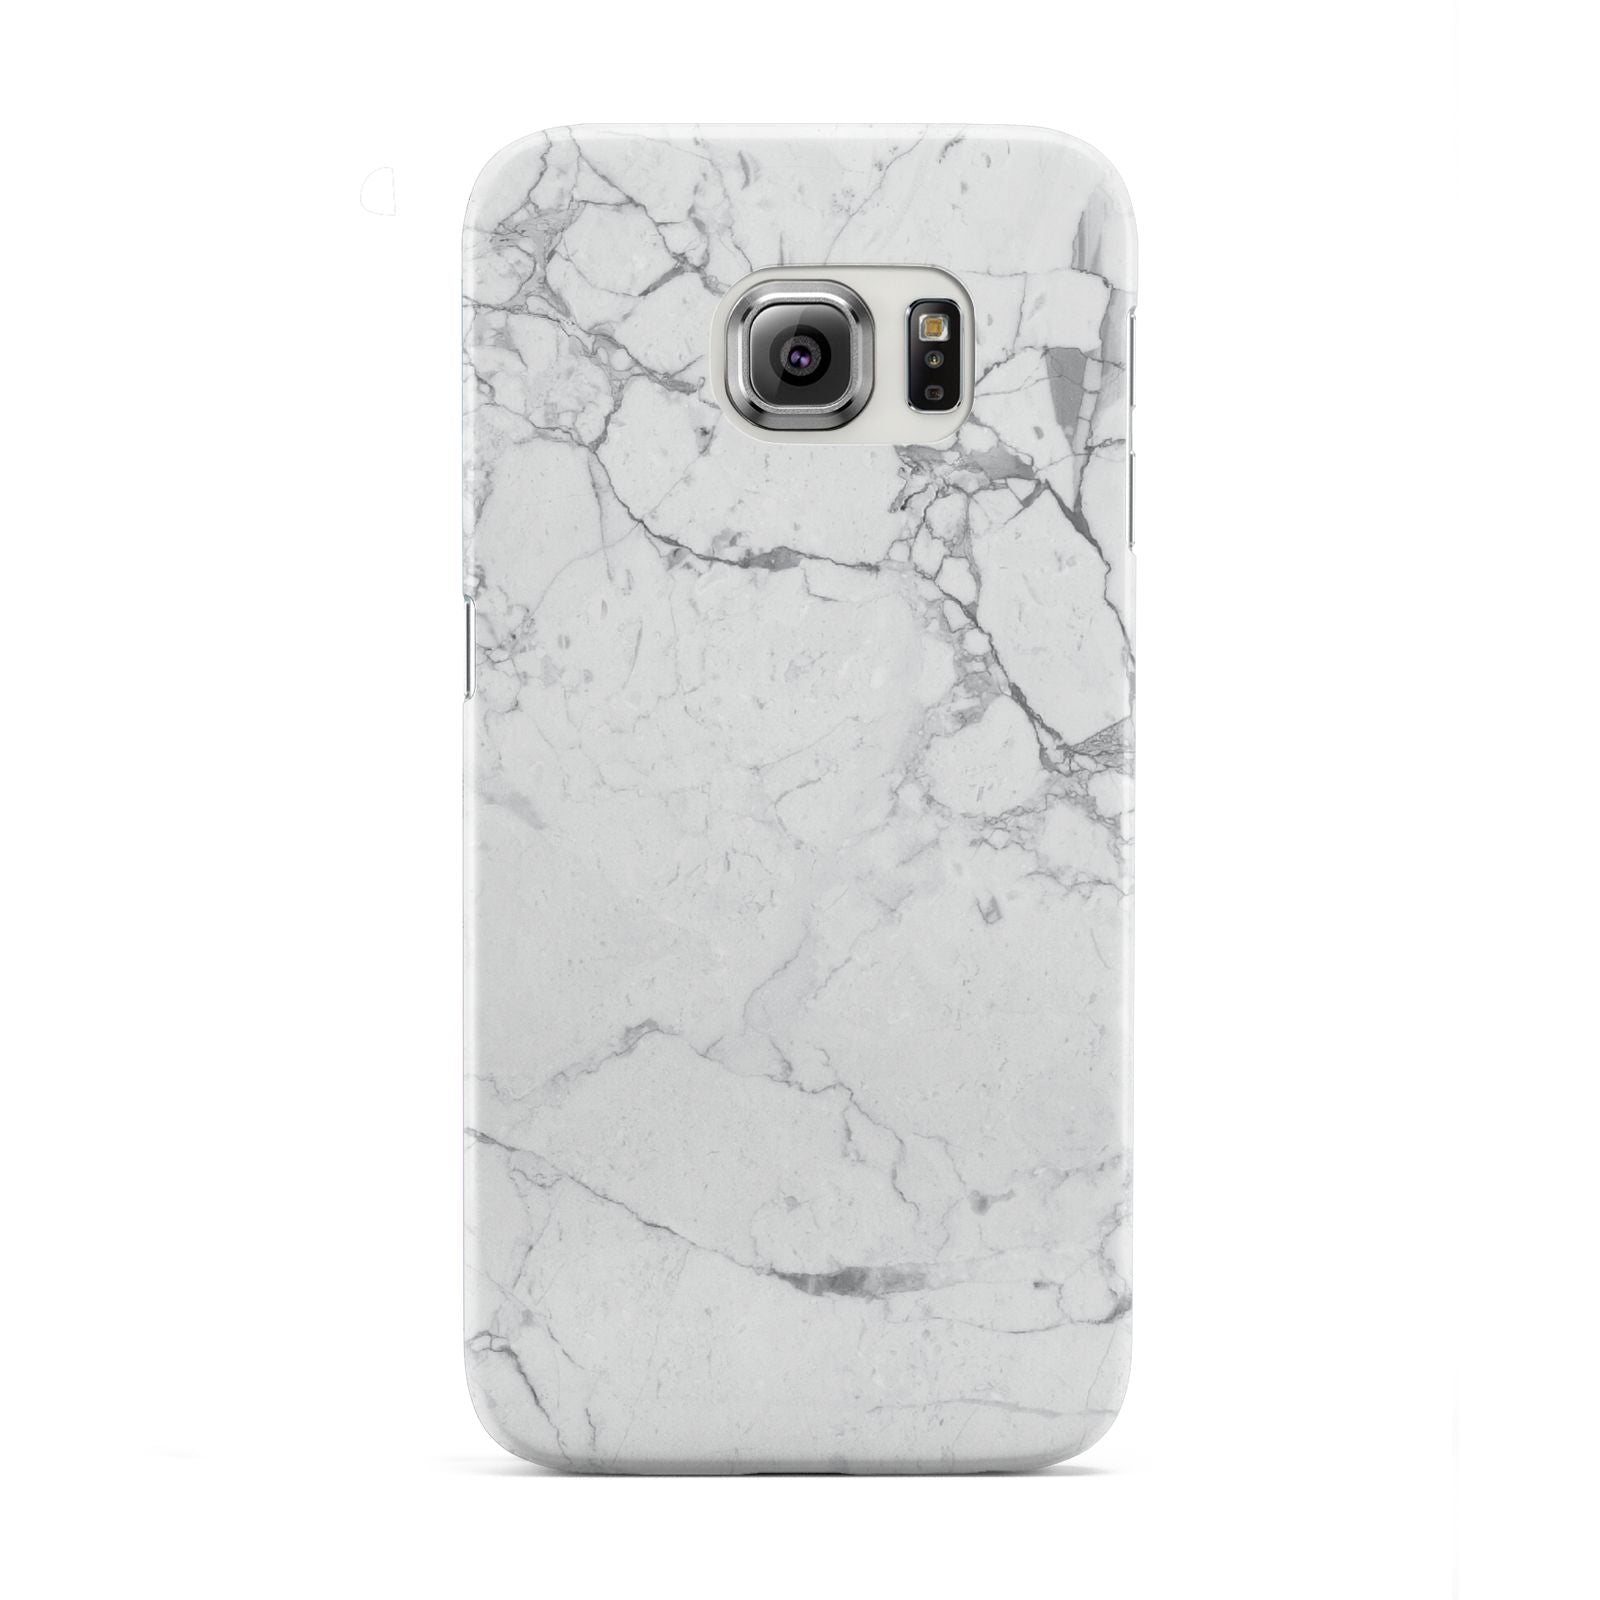 Faux Marble Effect Grey White Samsung Galaxy S6 Edge Case